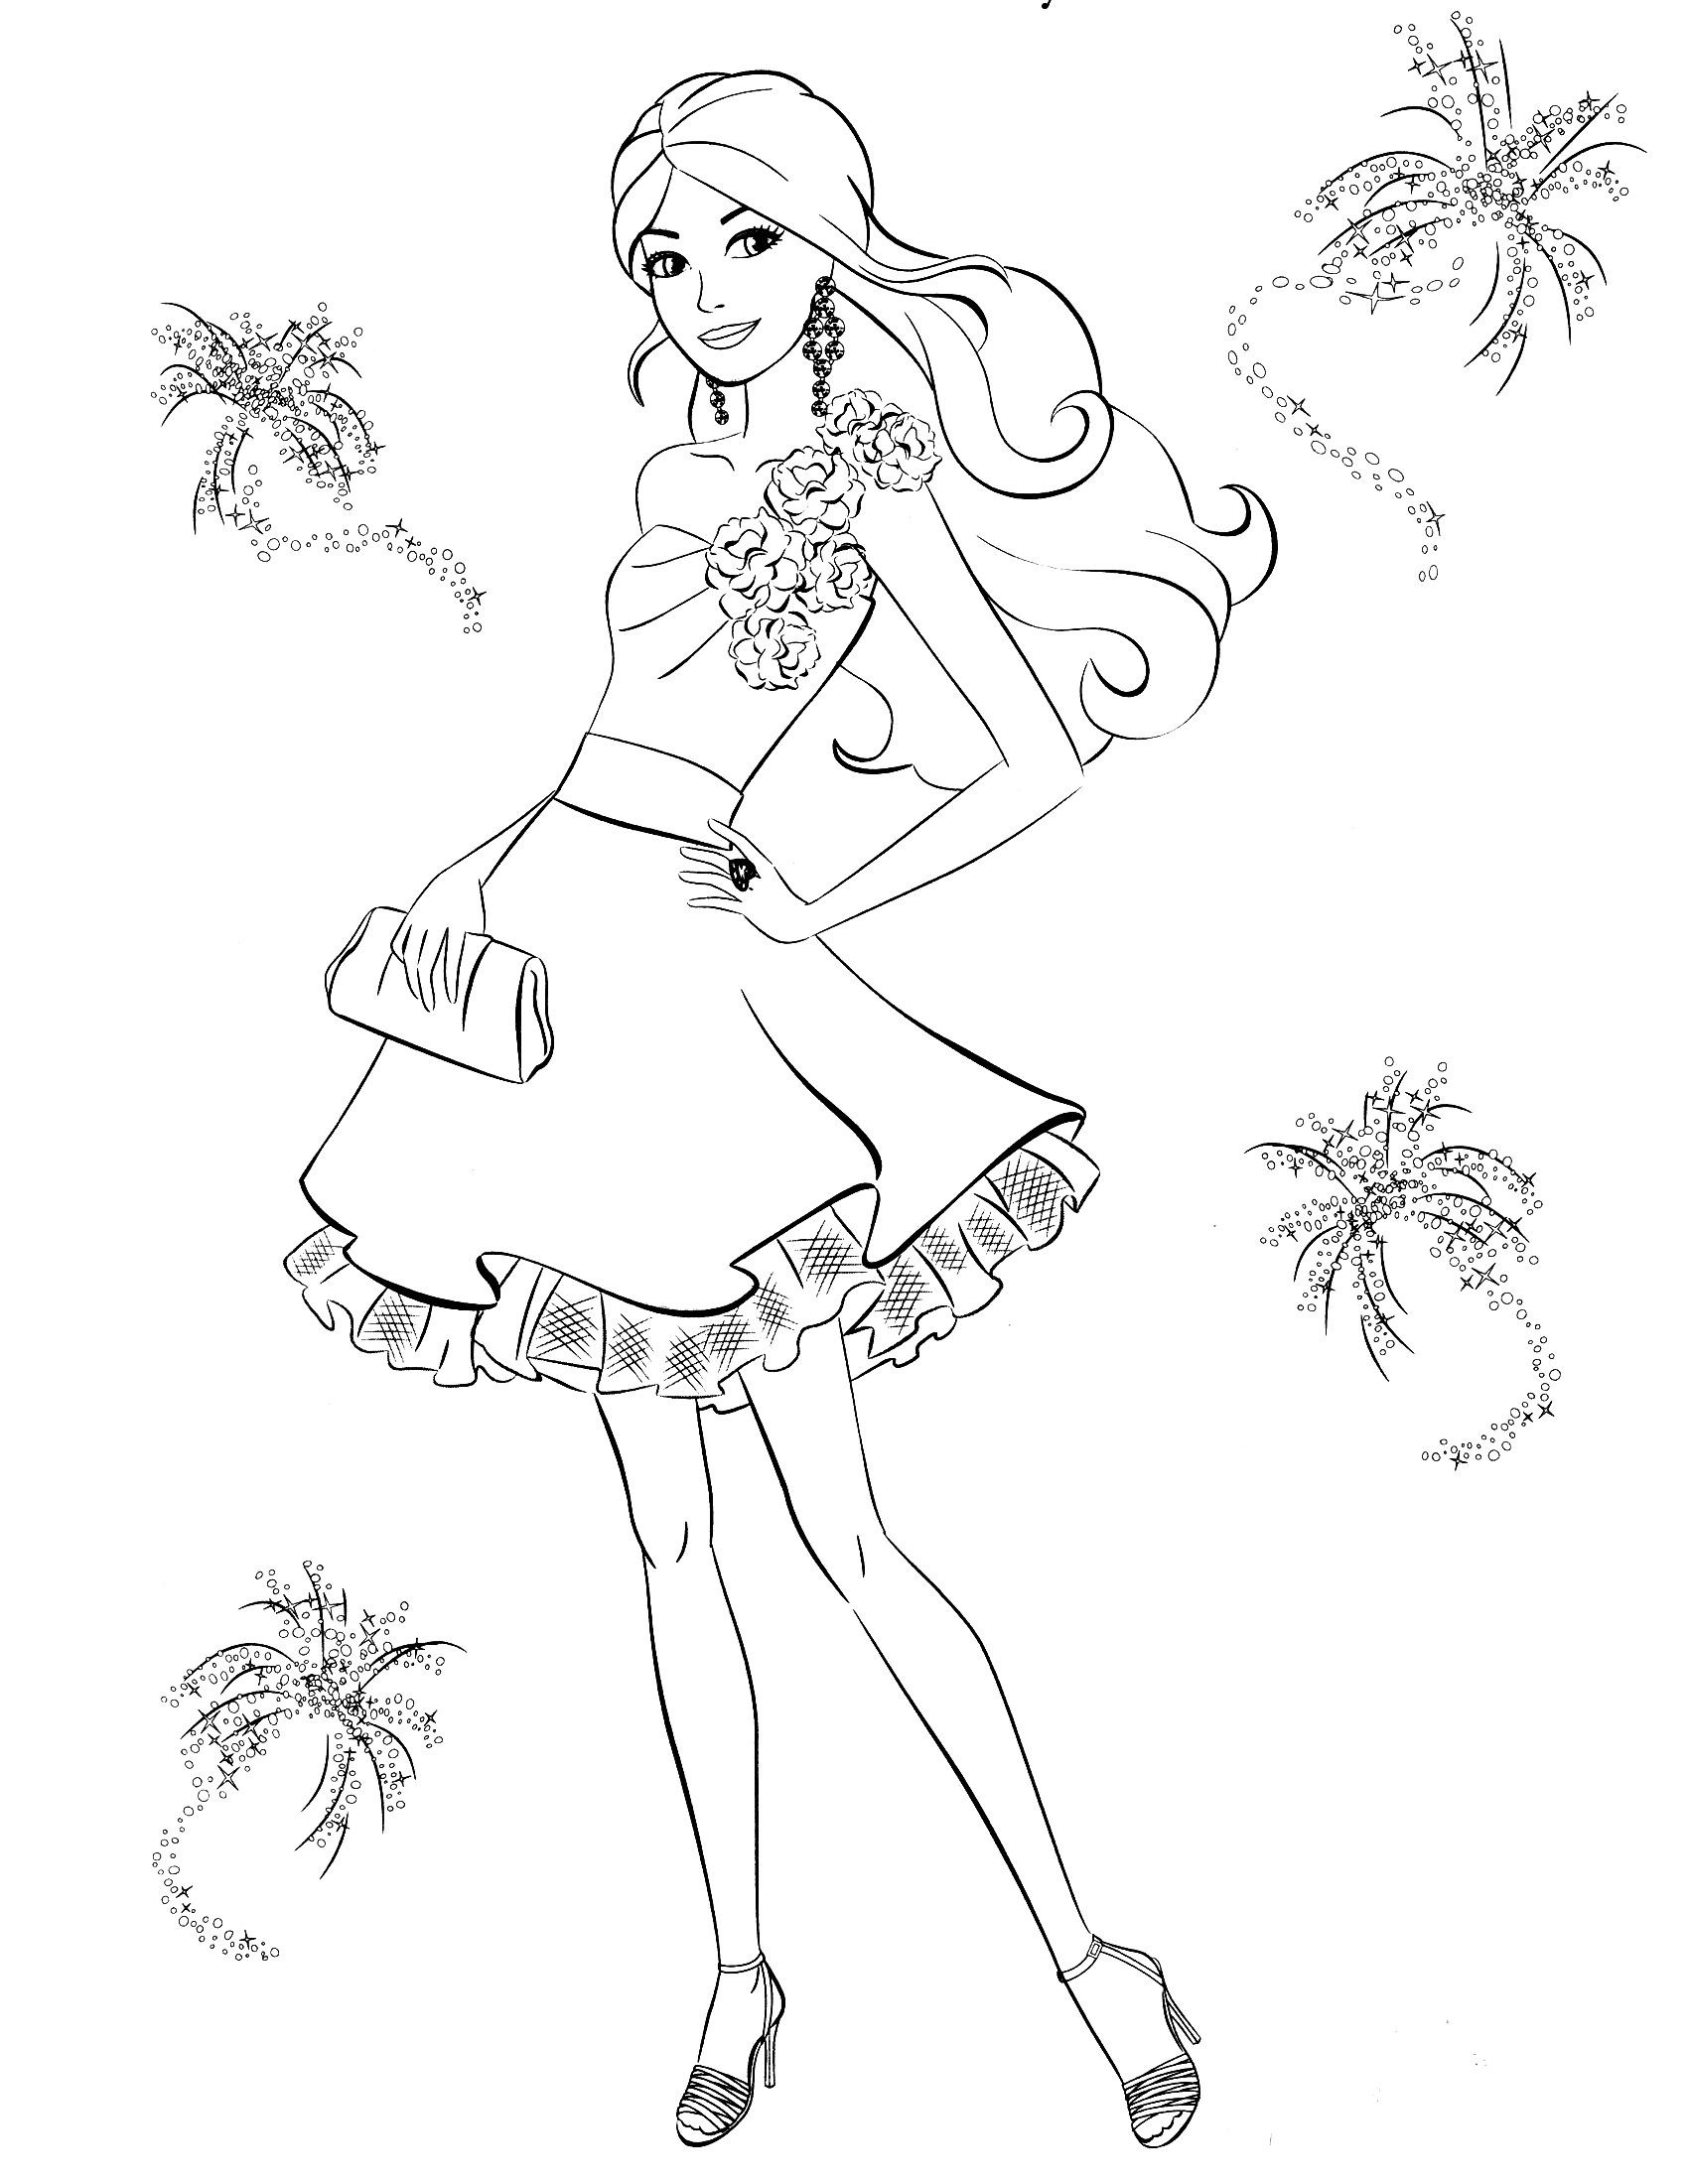 Barbie Coloring Pages Games at GetDrawings.com | Free for personal ...